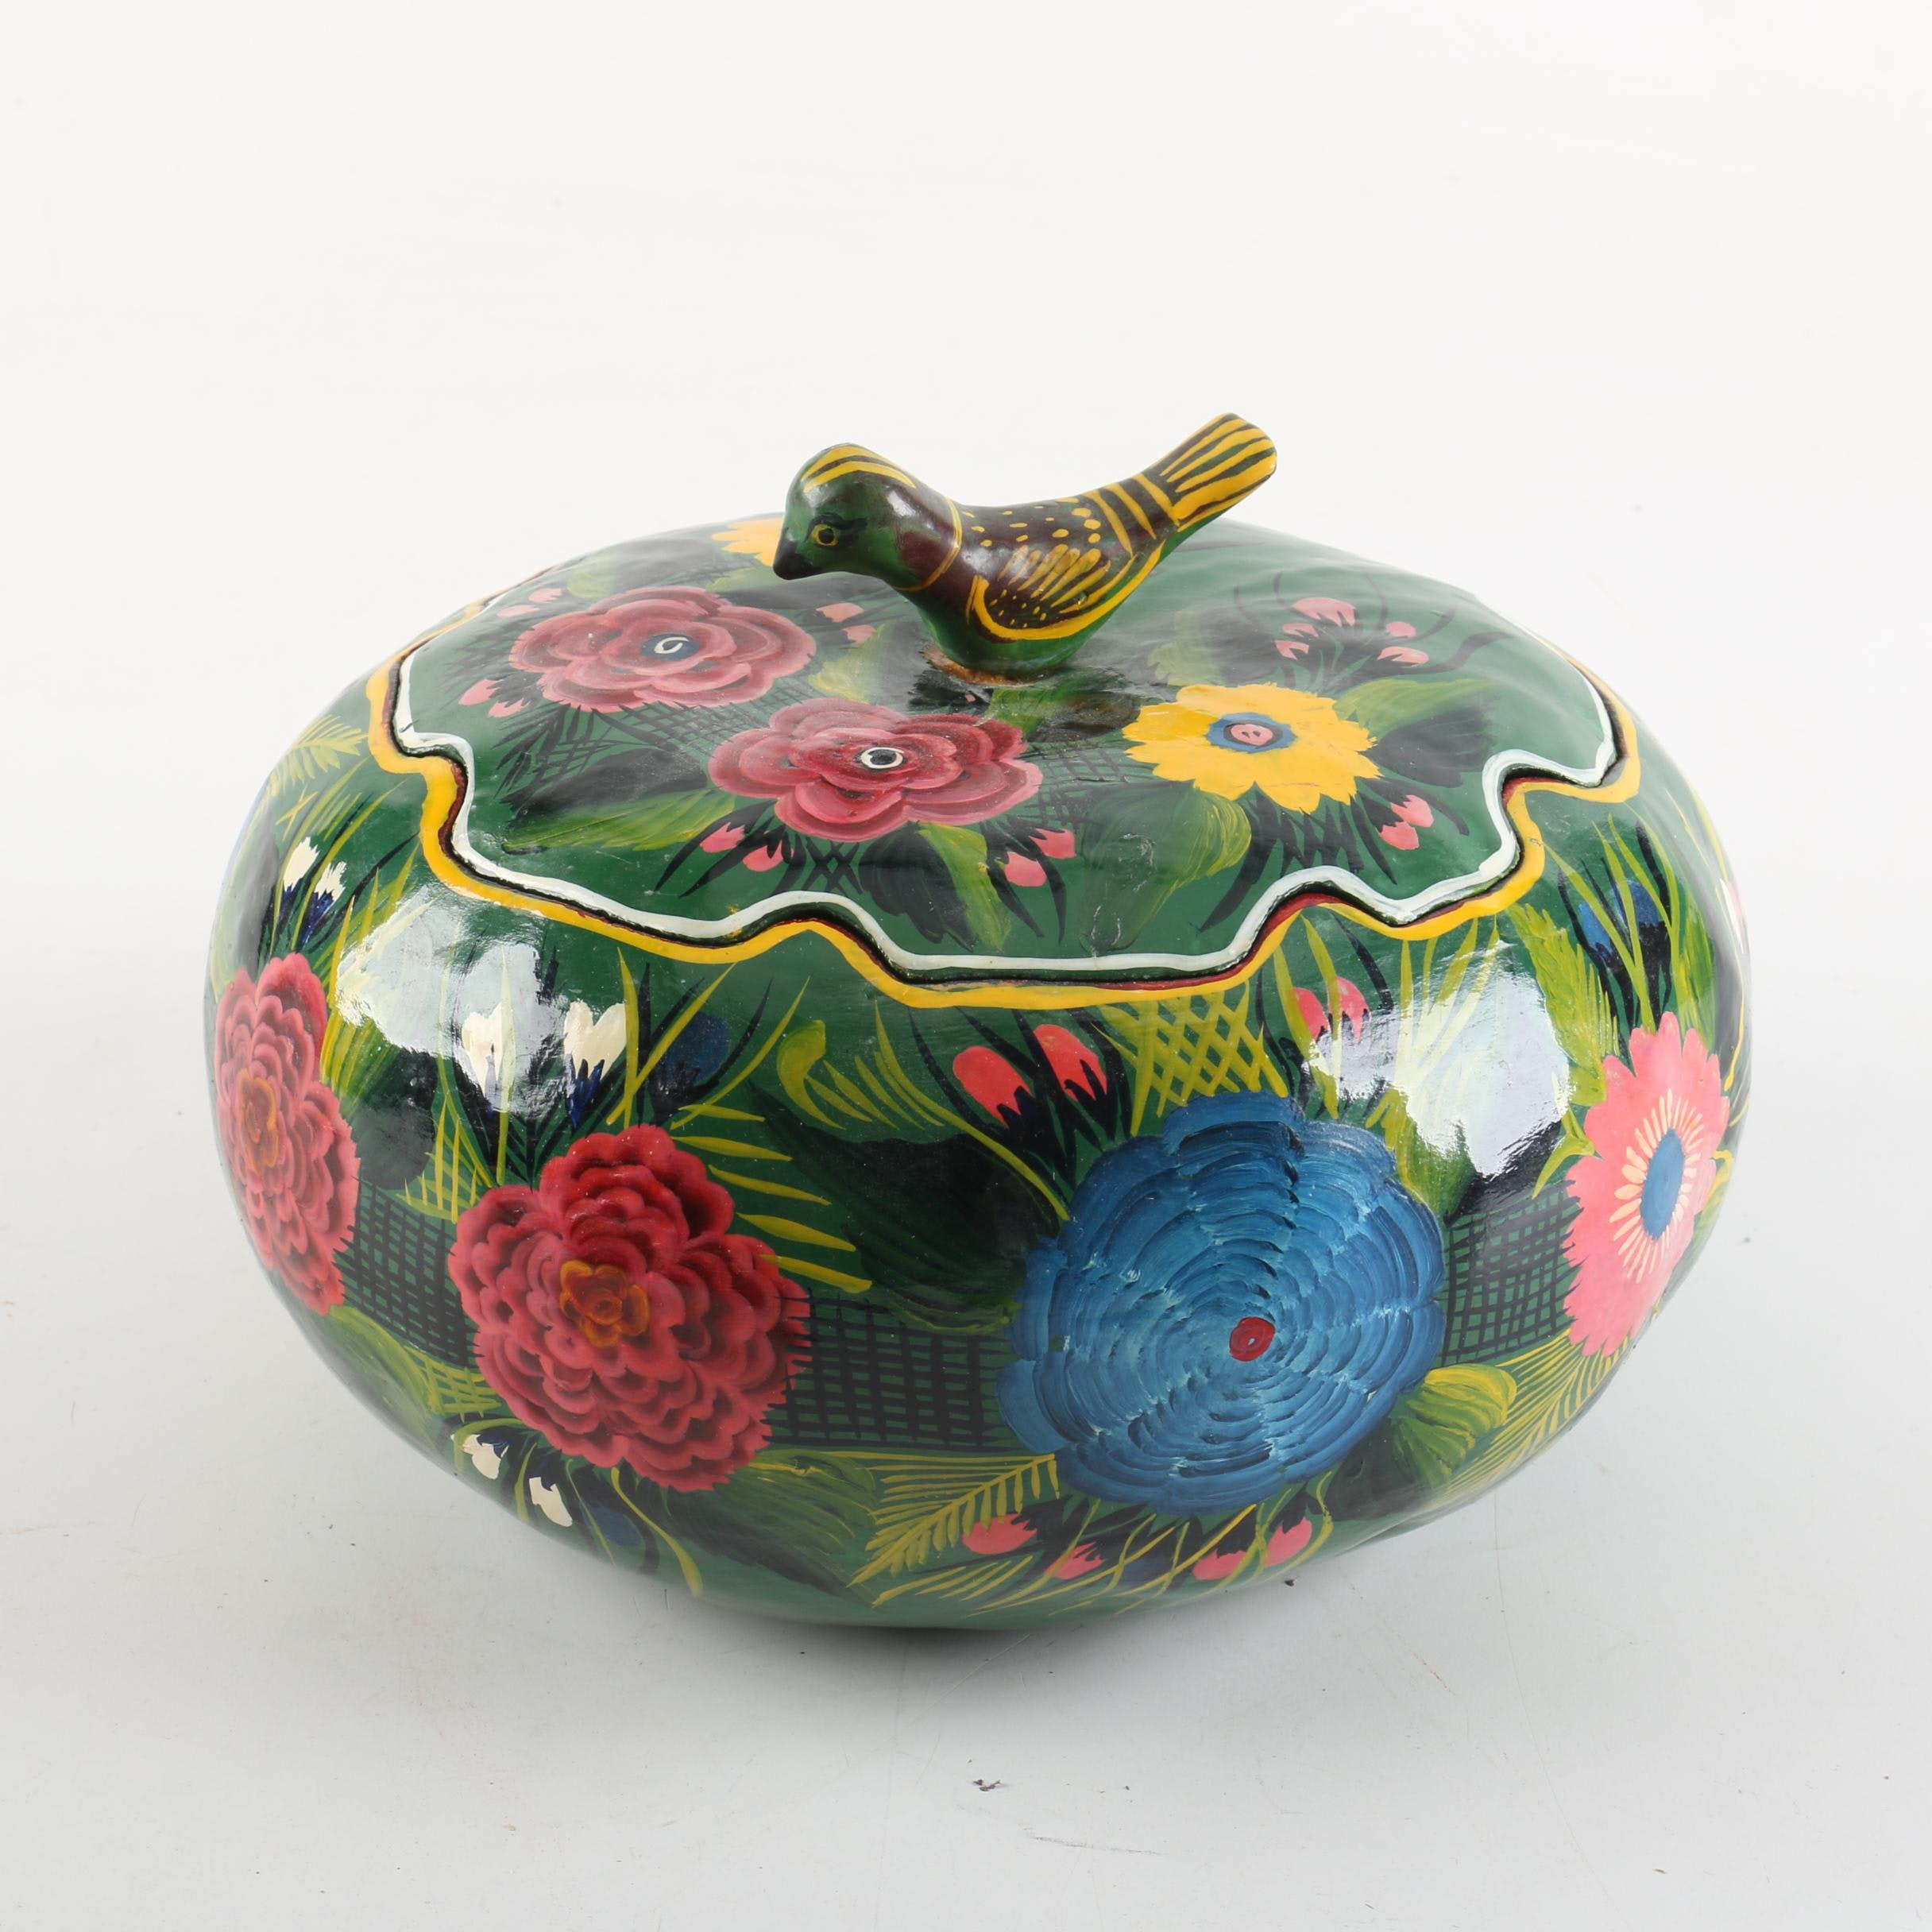 Maque Gourd with a Floral Motif